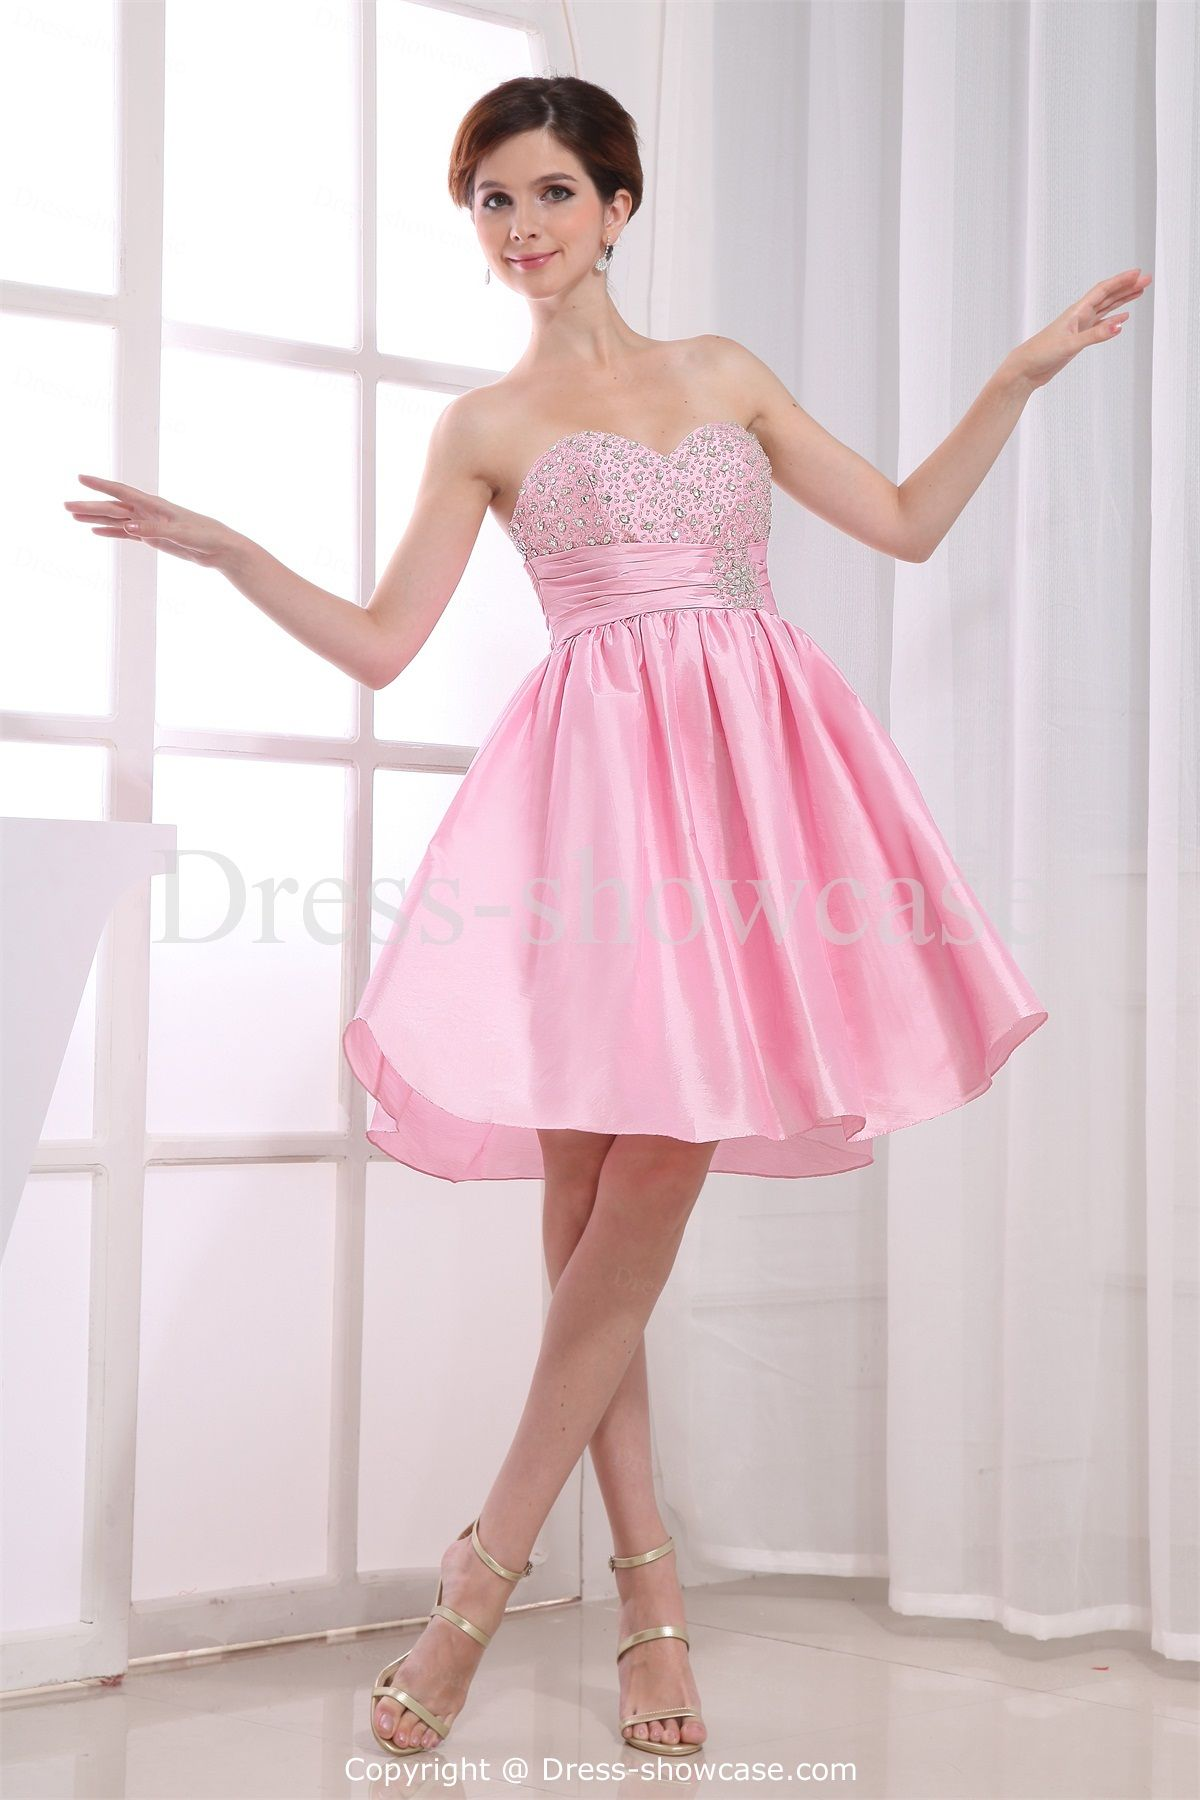 Pink Mini Taffeta Sweetheart Sweet 16 Dress | Sweet 16 | Pinterest ...